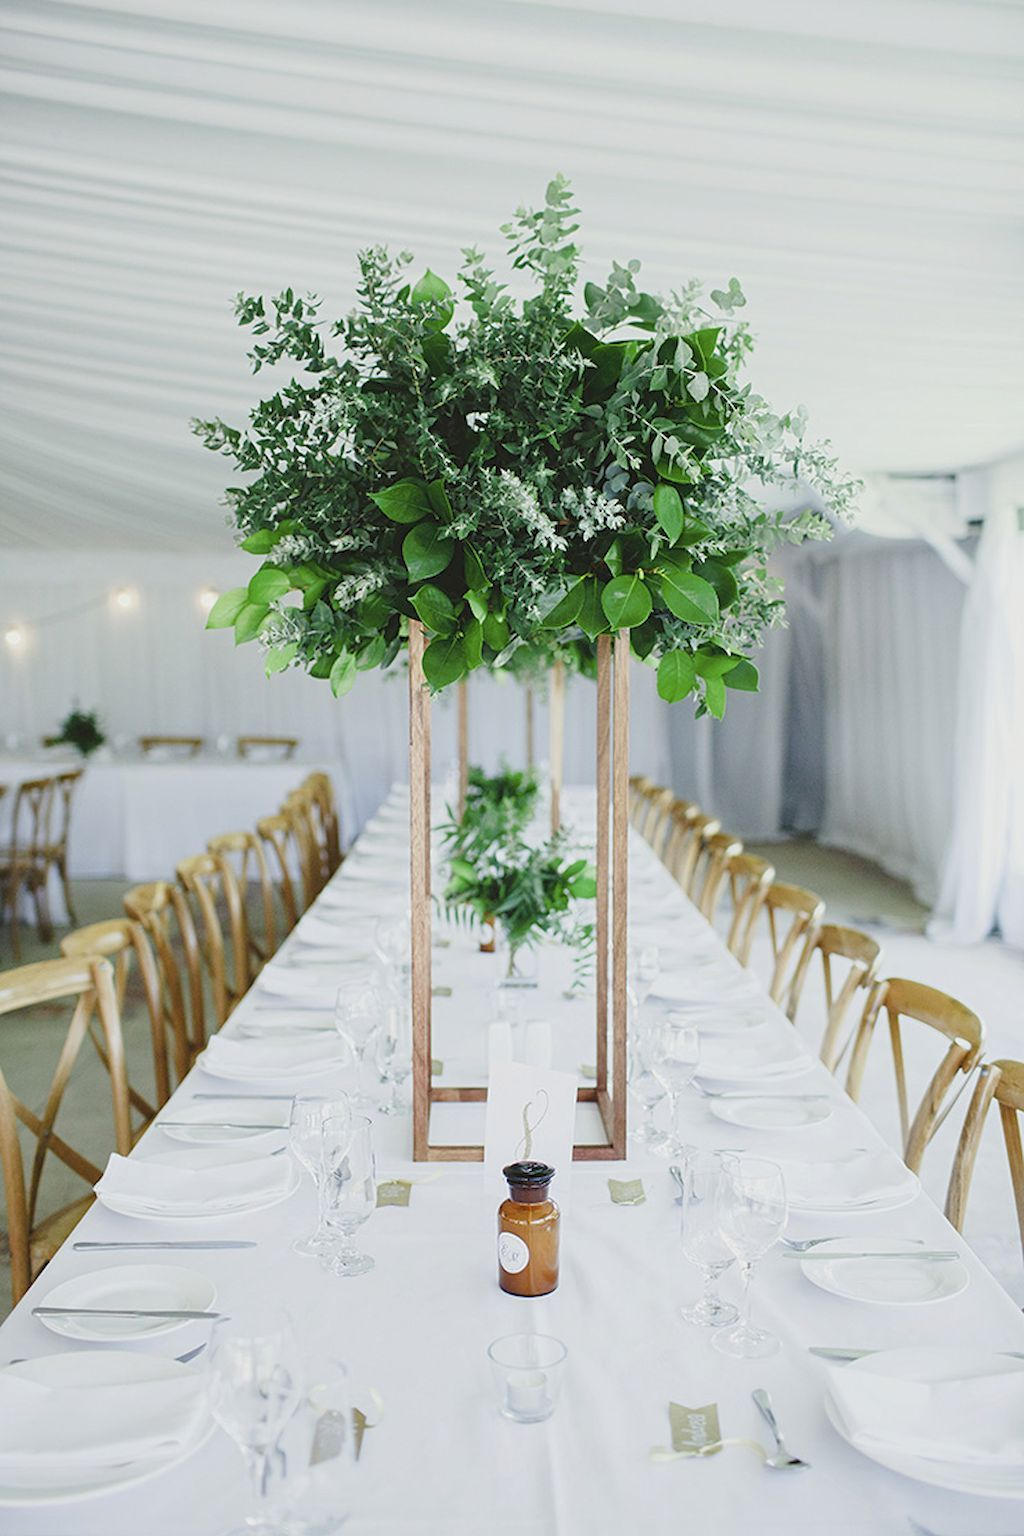 Wedding decoration ideas simple   Simple Greenery Wedding Centerpieces Decor Ideas  Pinterest